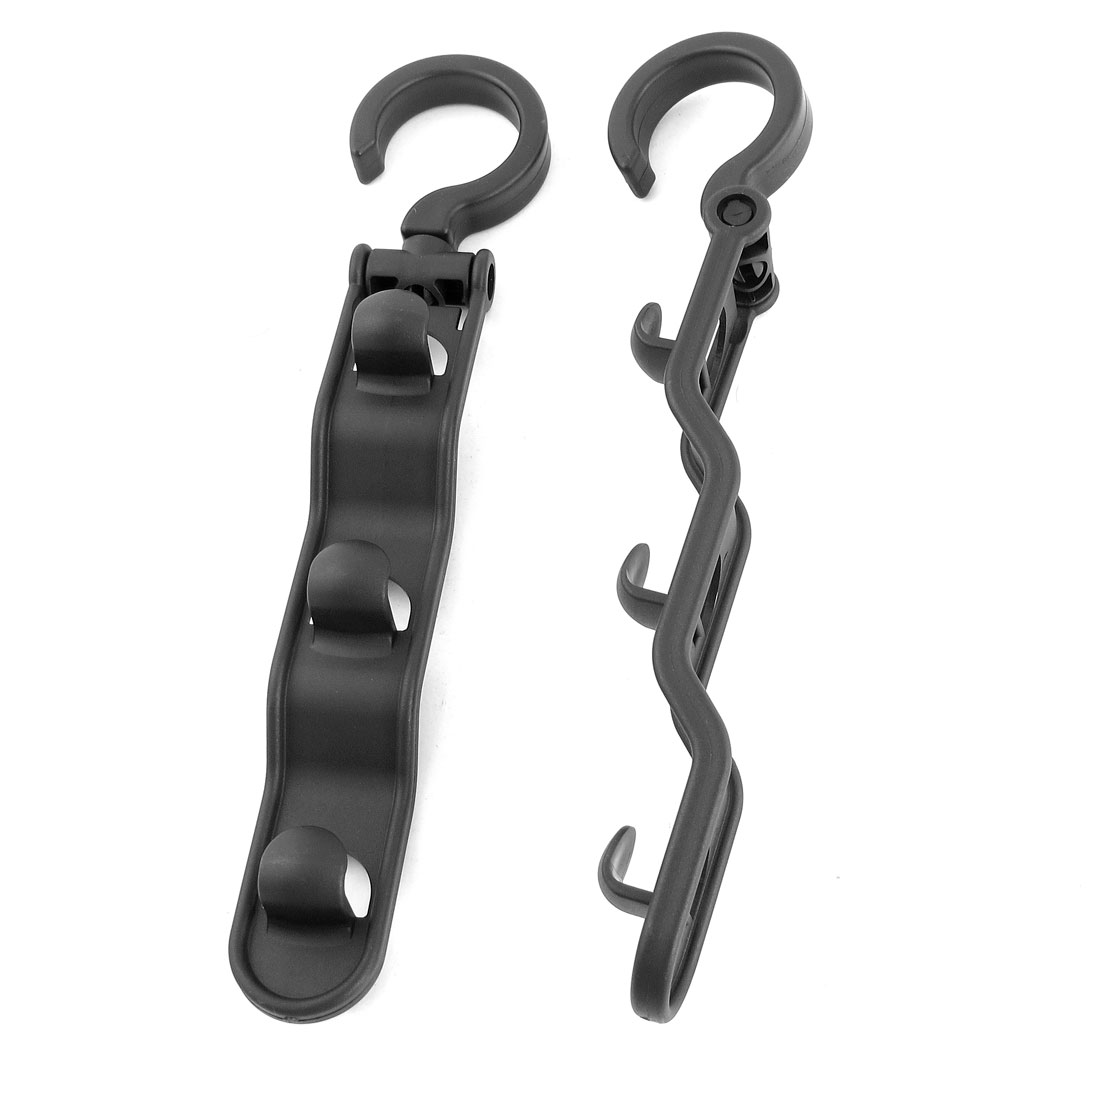 Garment Shop Black Plastic 3 Hooks Swivel Clothes Robe Towel Hat Bag Scarf Hook Hanger Organizer 2 Pcs